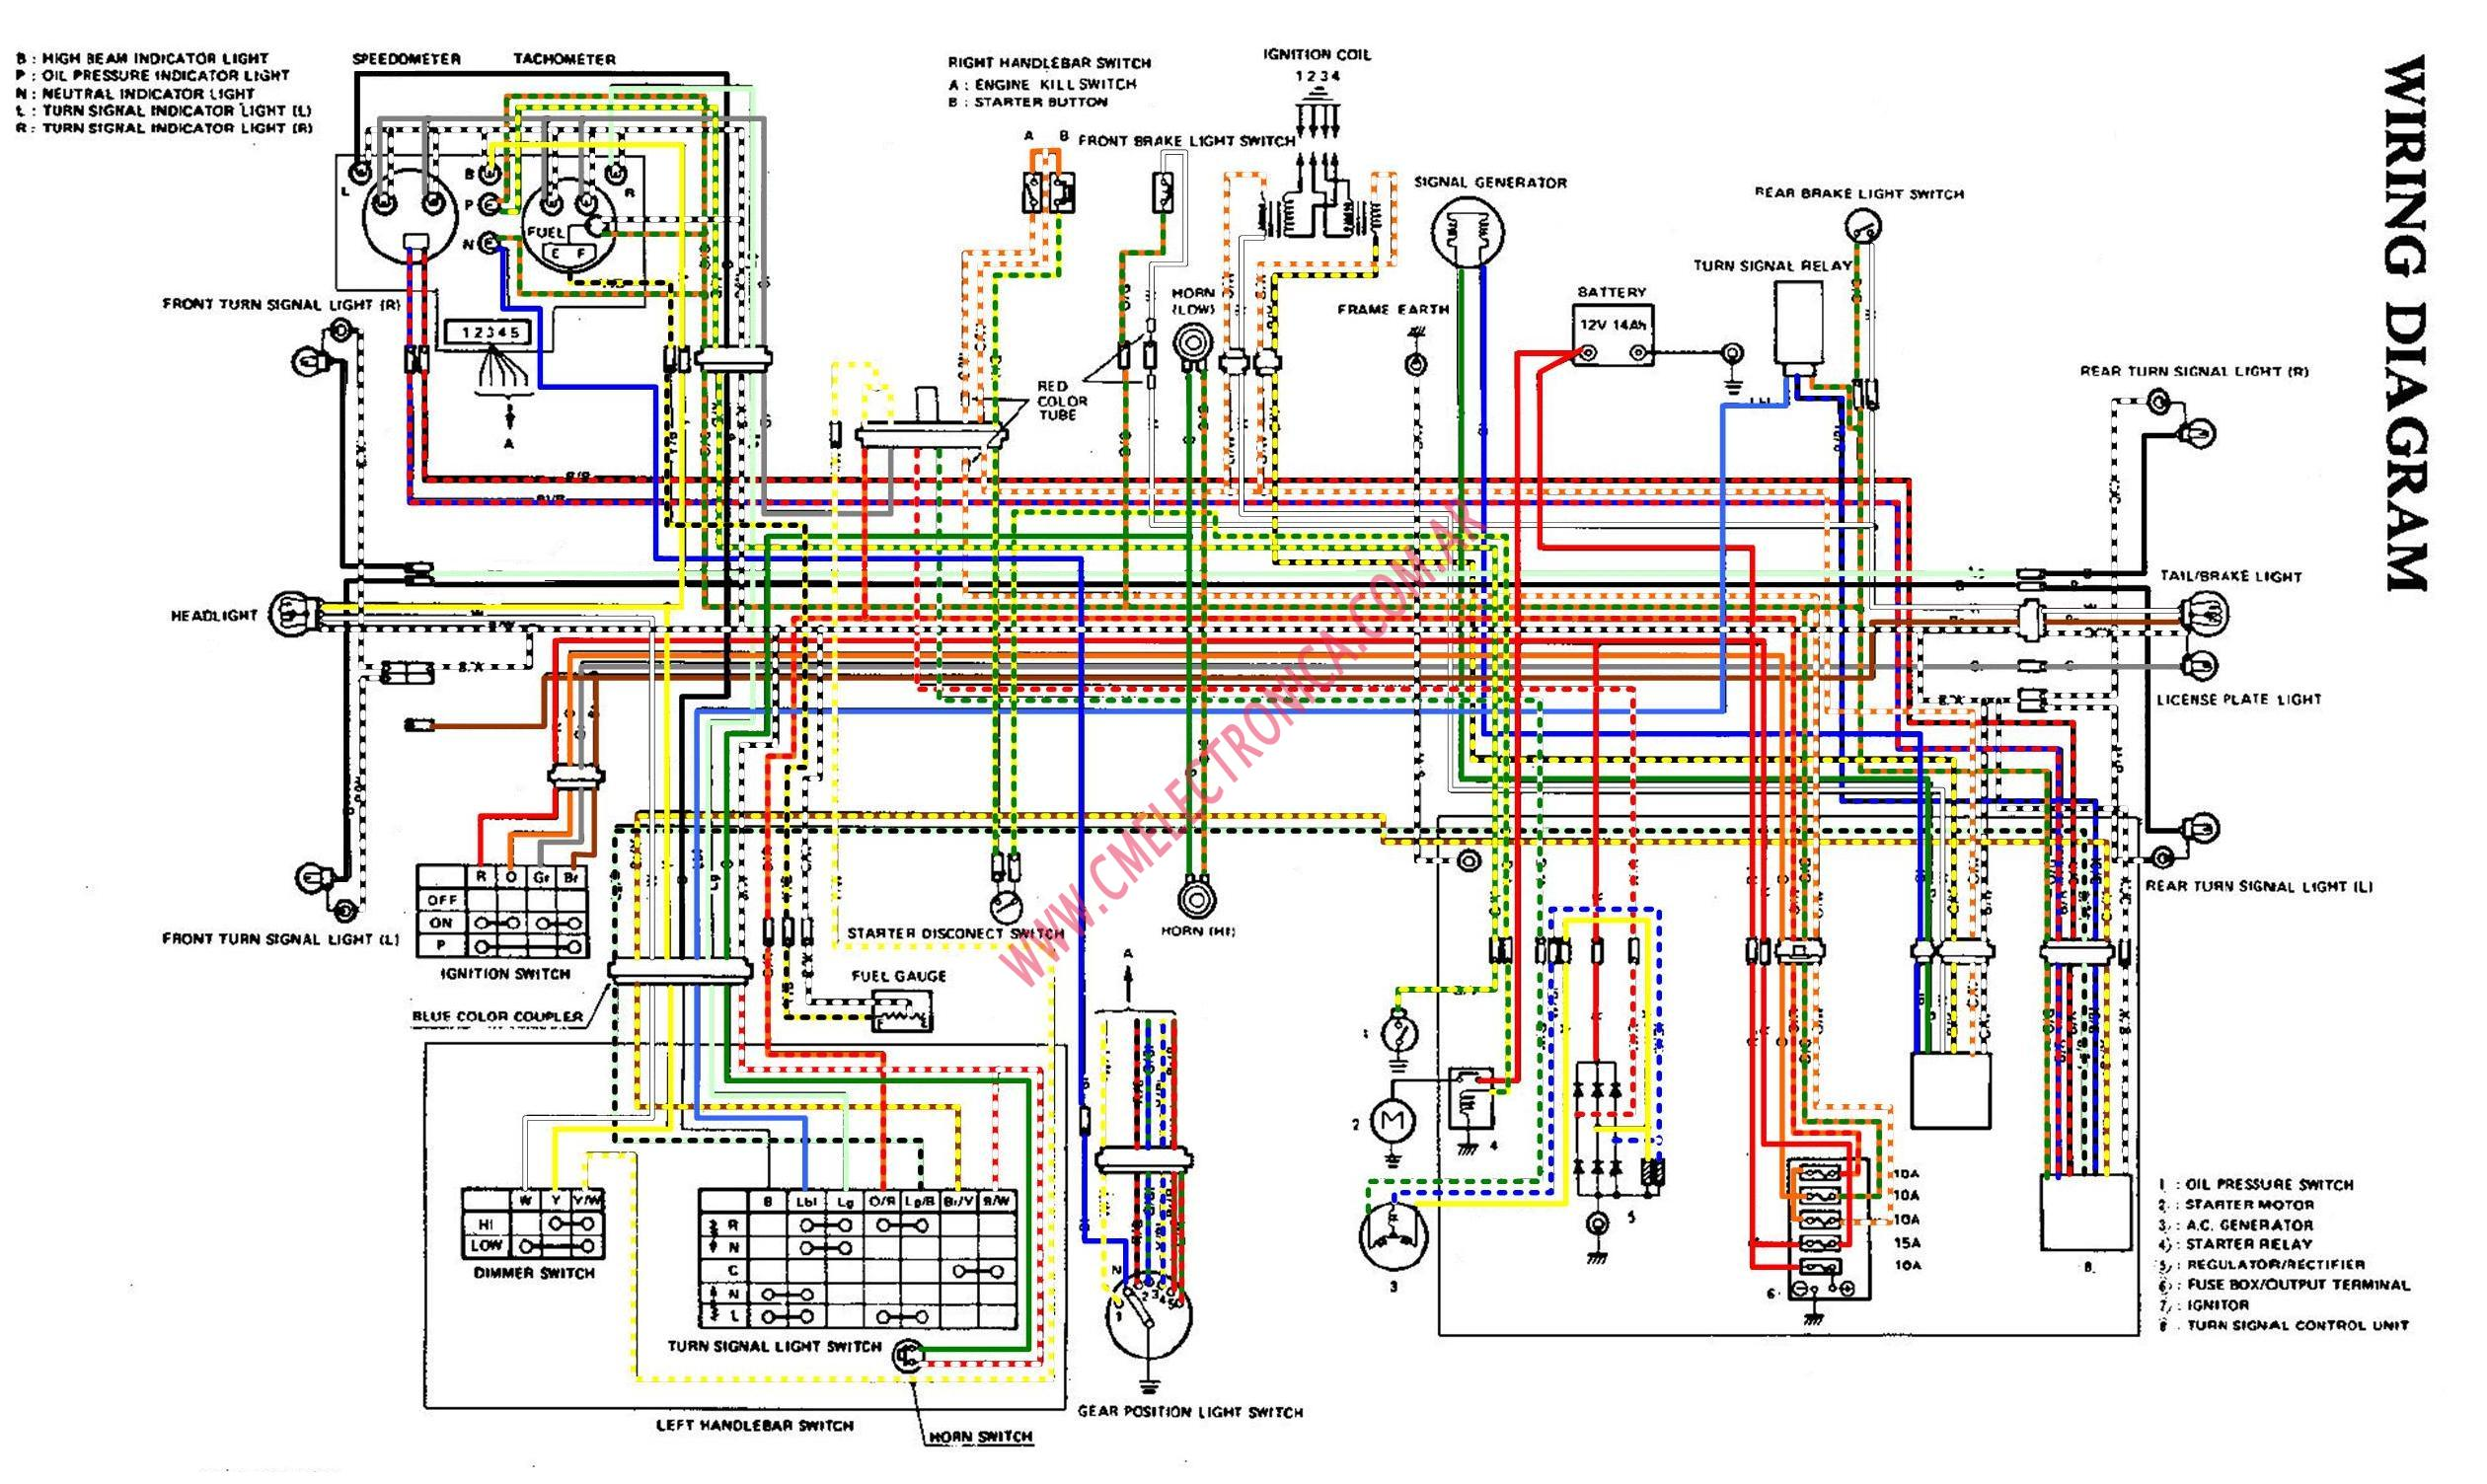 suzuki wiring diagram suzuki image wiring diagram 1979 suzuki gs550 wiring 1979 wiring diagrams on suzuki wiring diagram